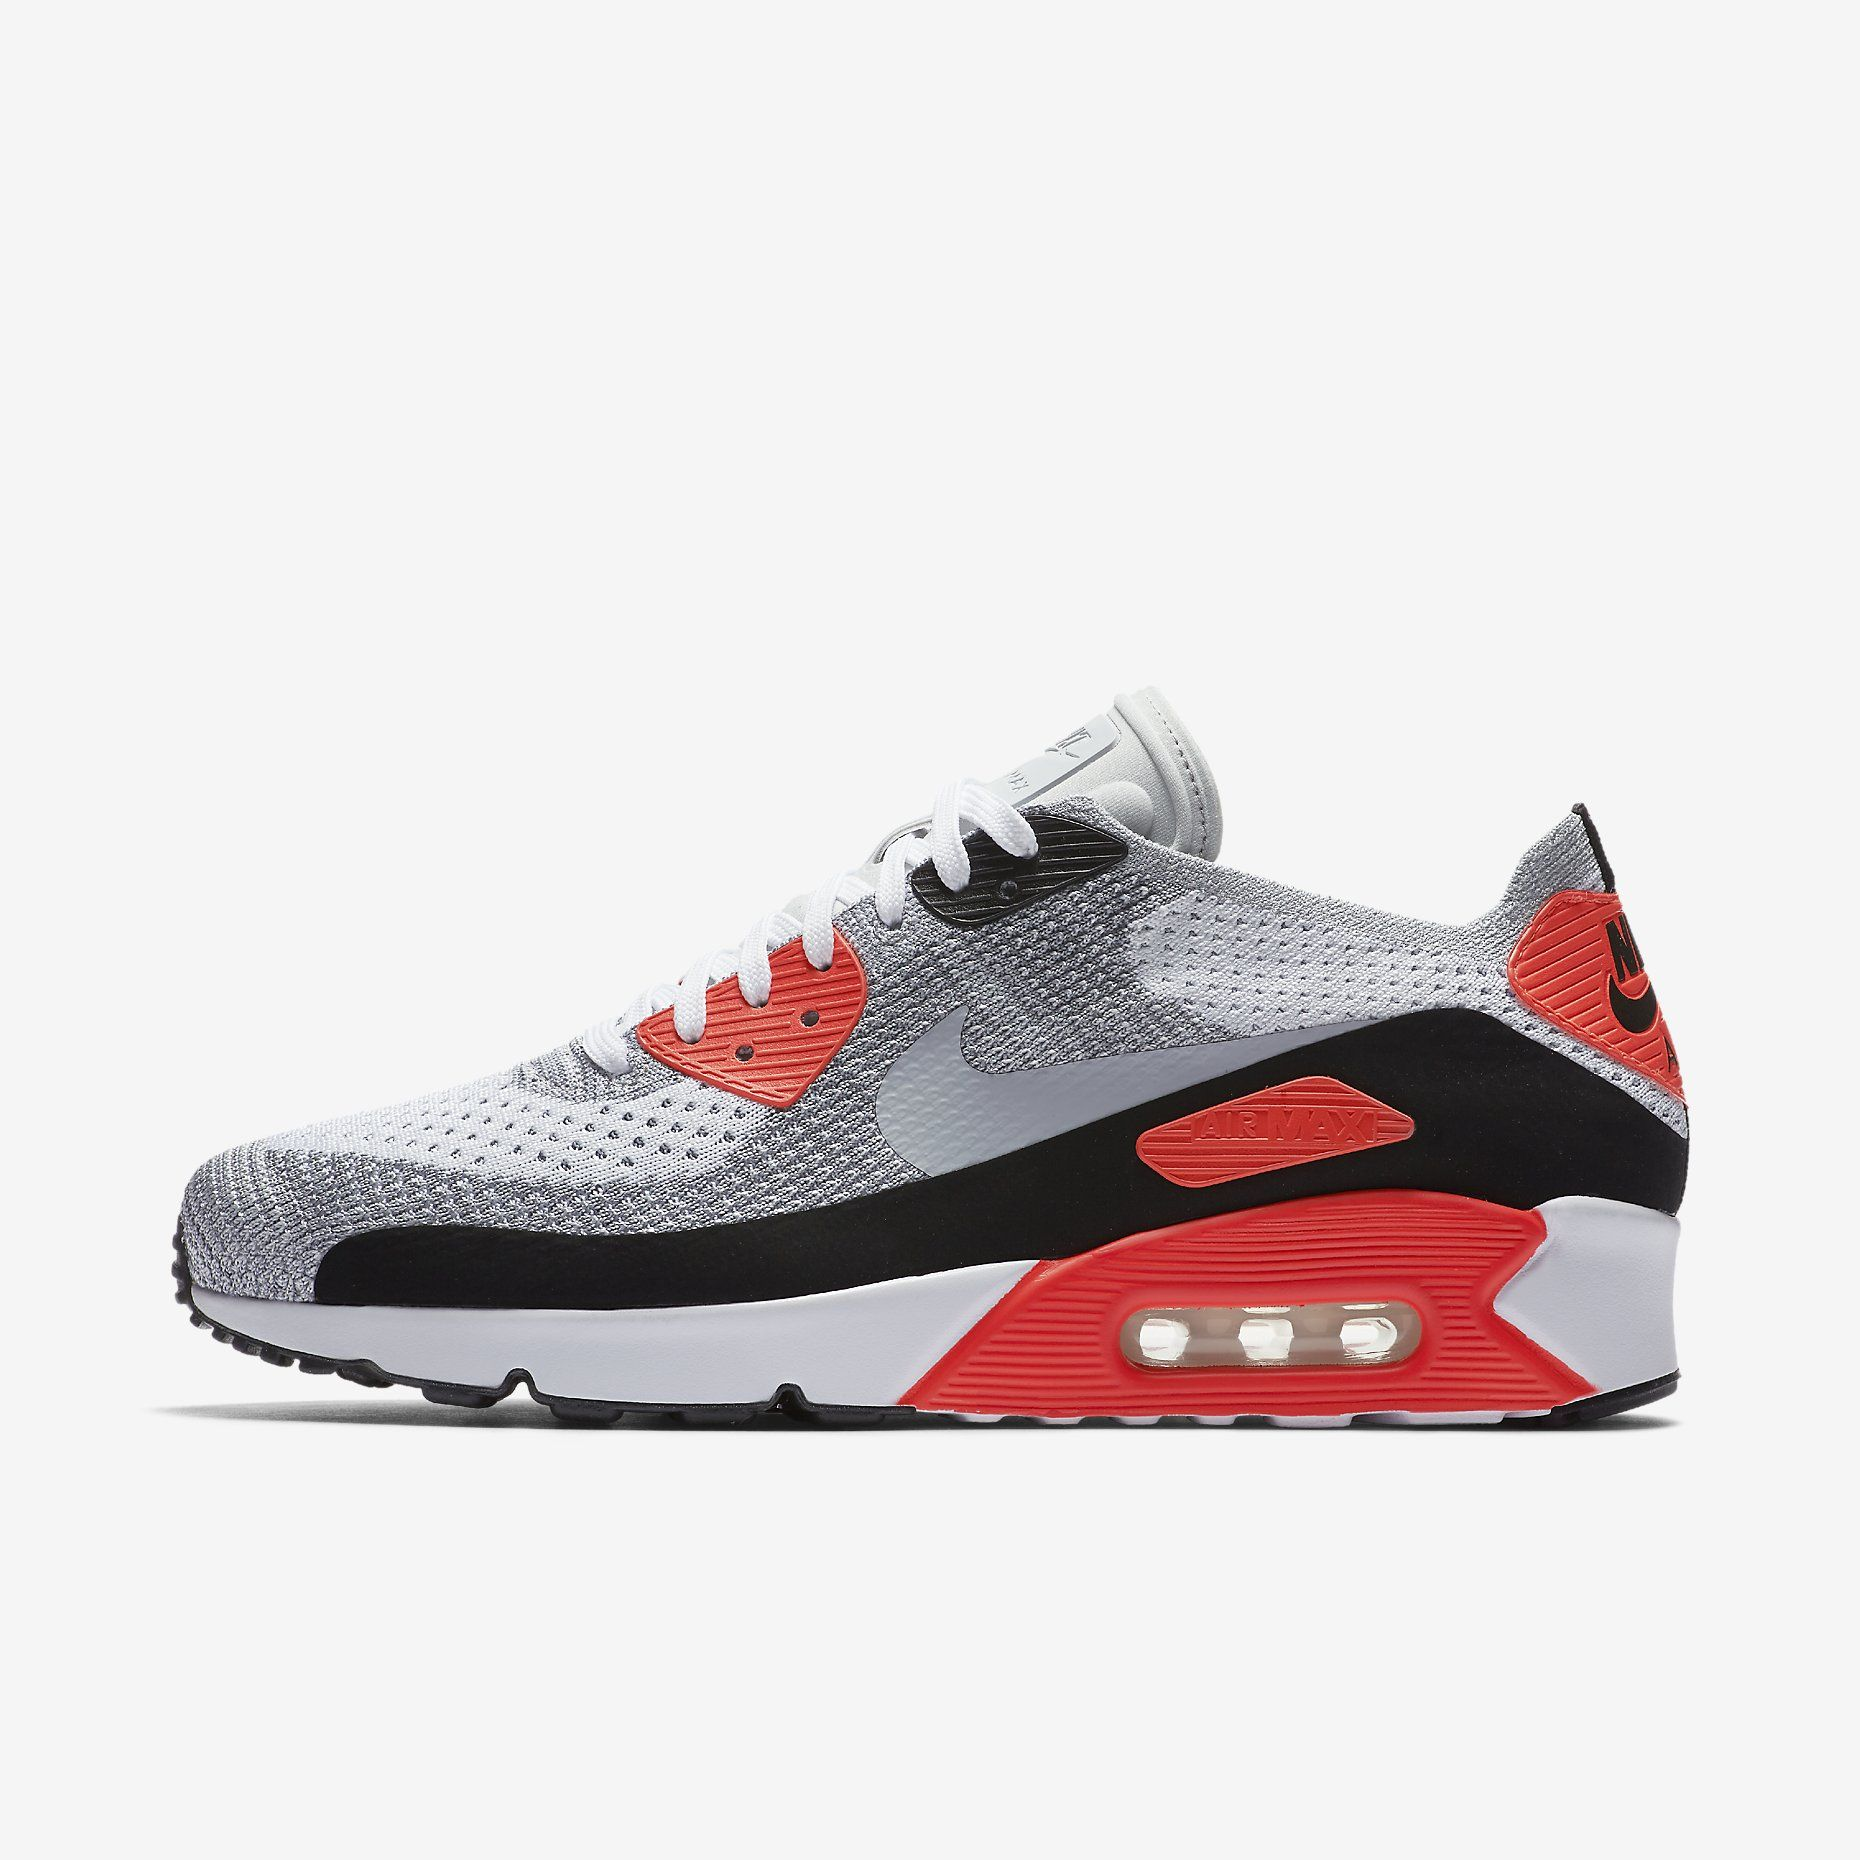 new product c0929 998c7 Nike AIR MAX 90 Ultra 2.0 Flyknit.